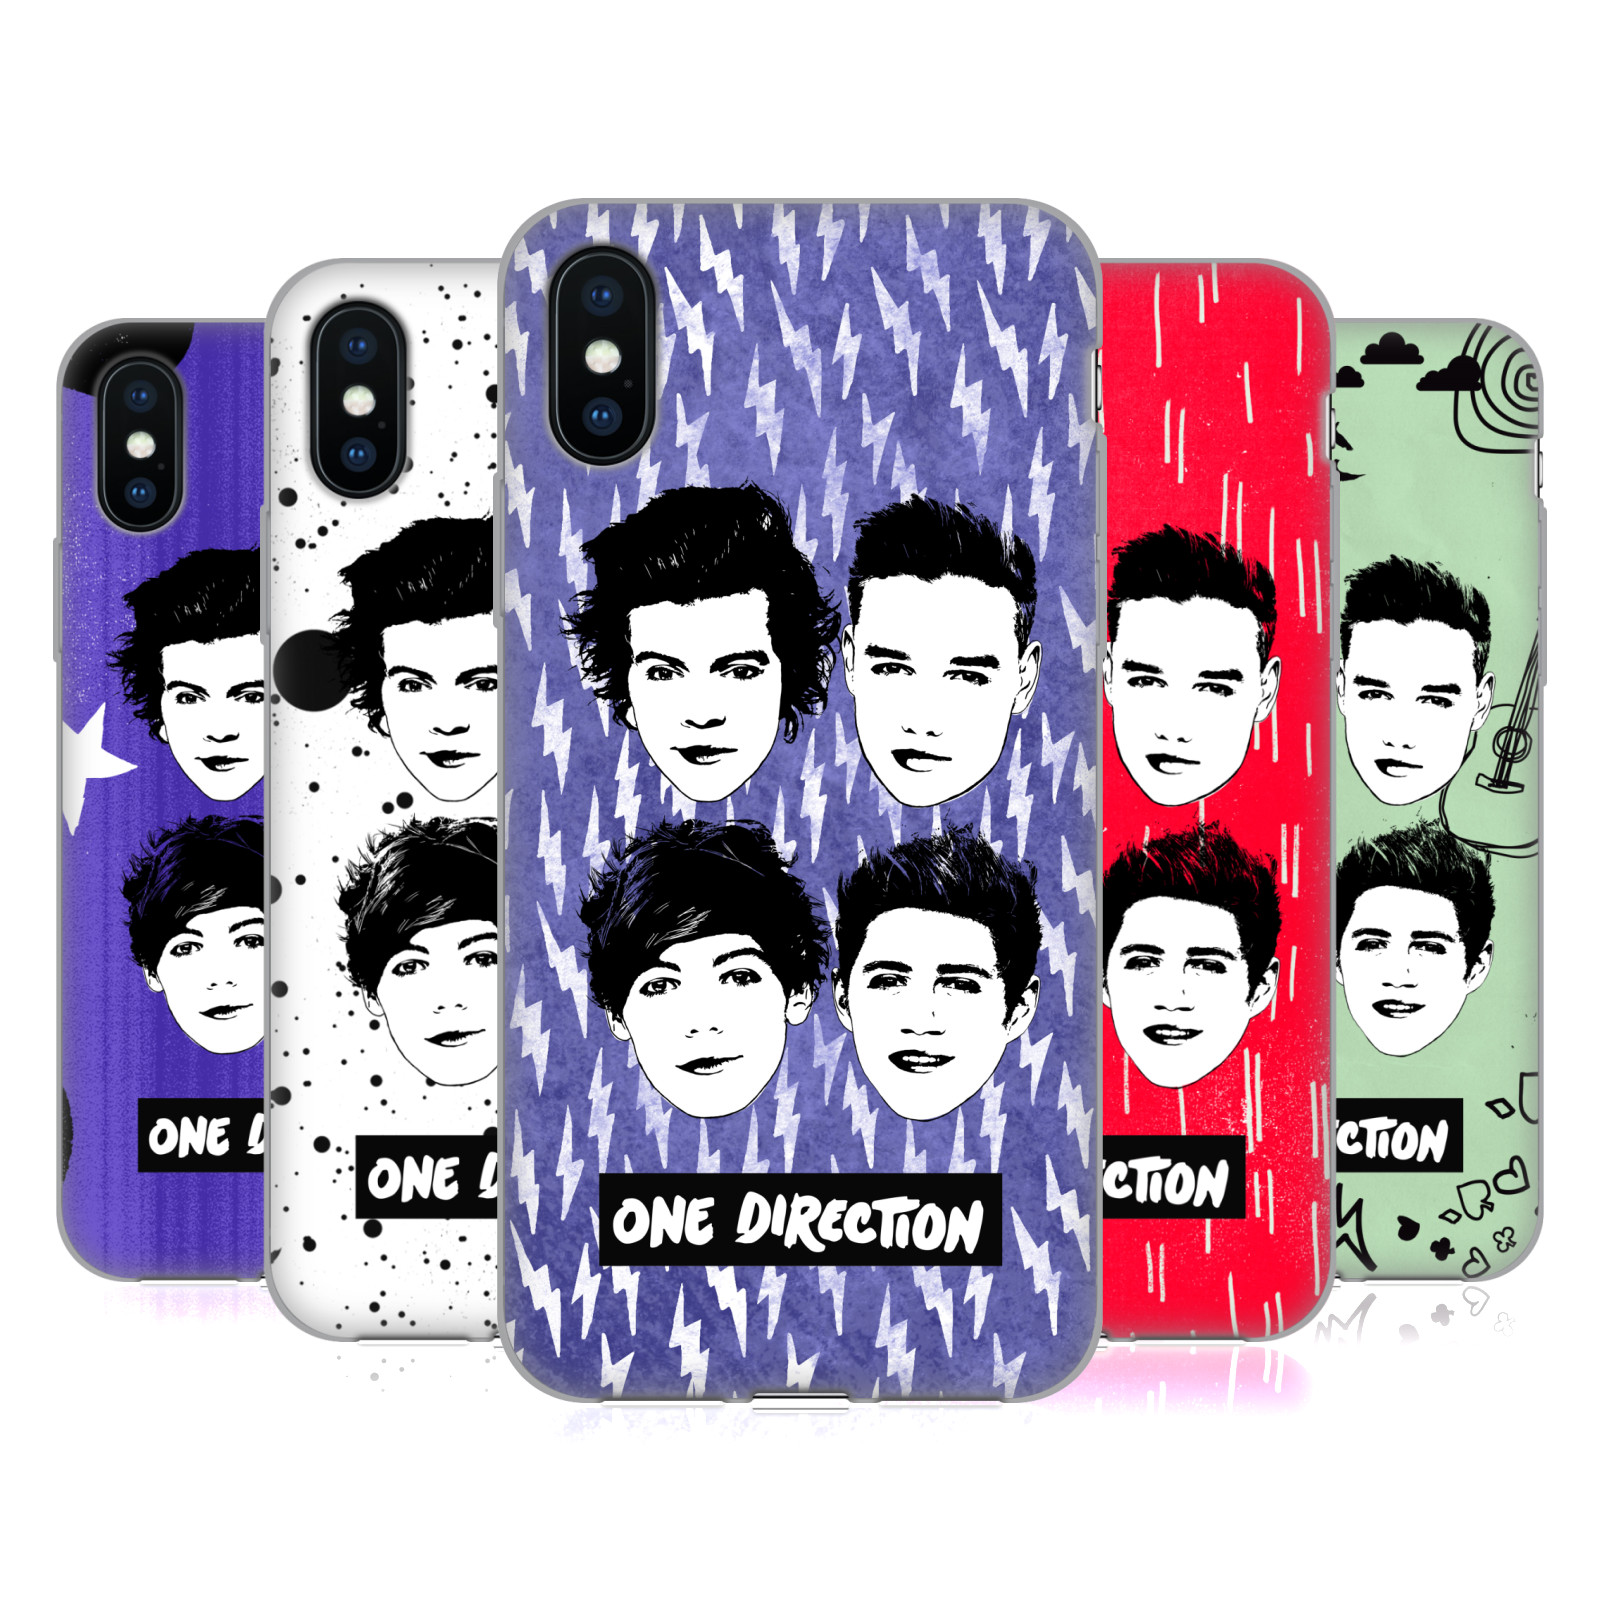 One Direction Group Graphic Faces